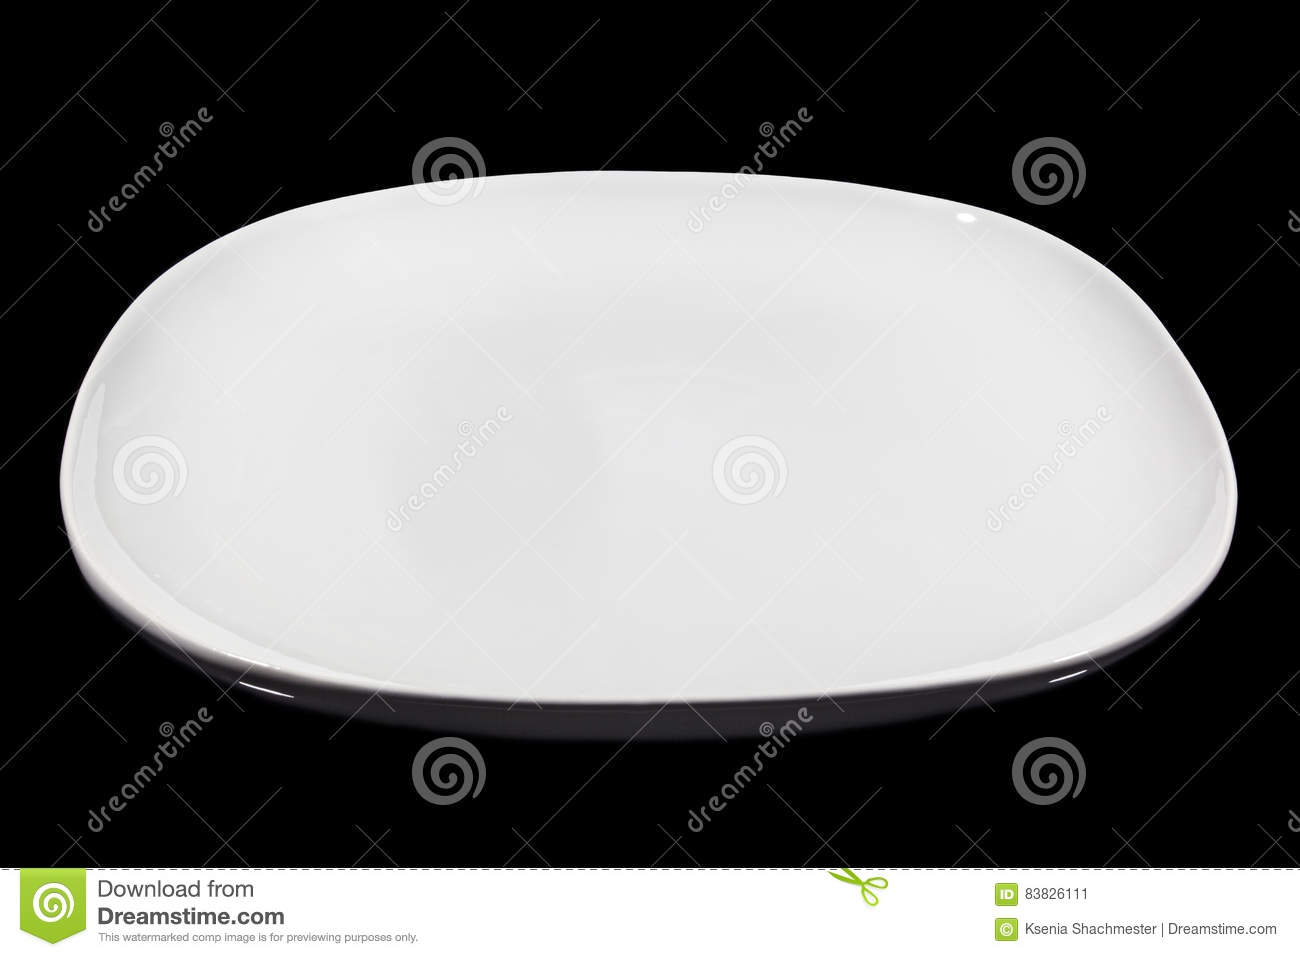 Flat white square plate on black background from side  sc 1 st  Dreamstime.com : white square side plates - pezcame.com